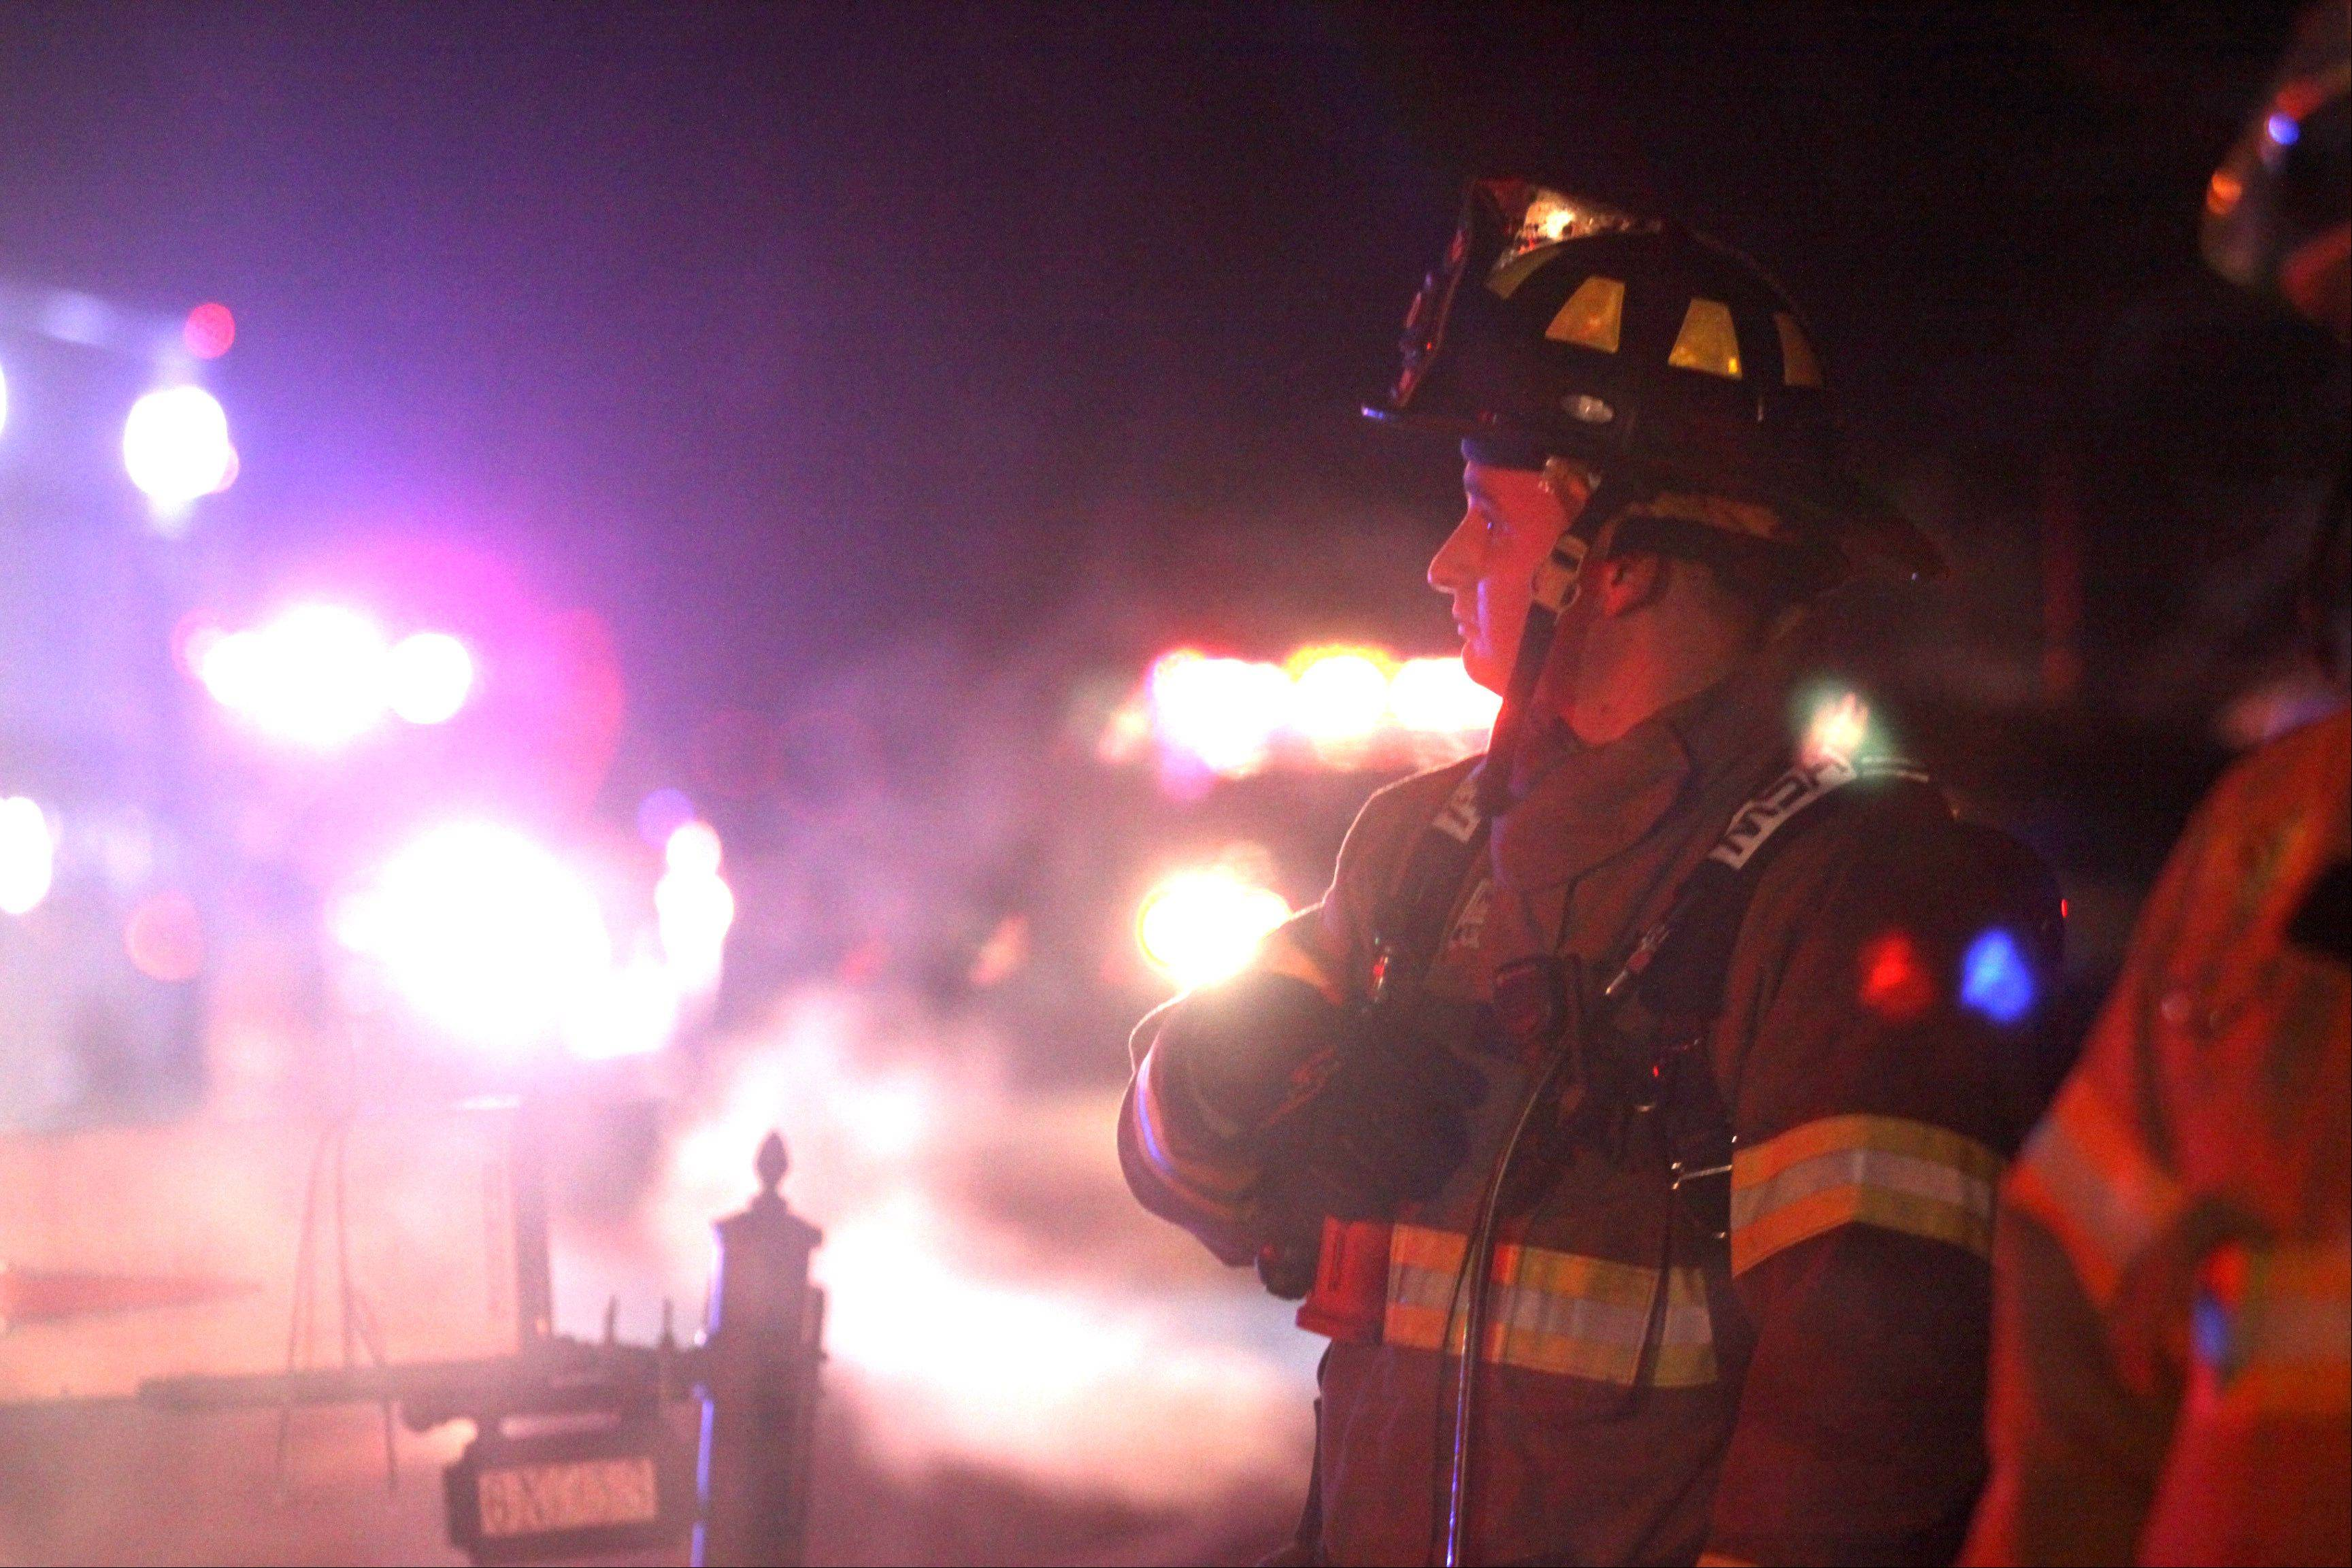 Fire personnel work at the scene fire along Weber Drive in the Valley View subdivision on Friday night.